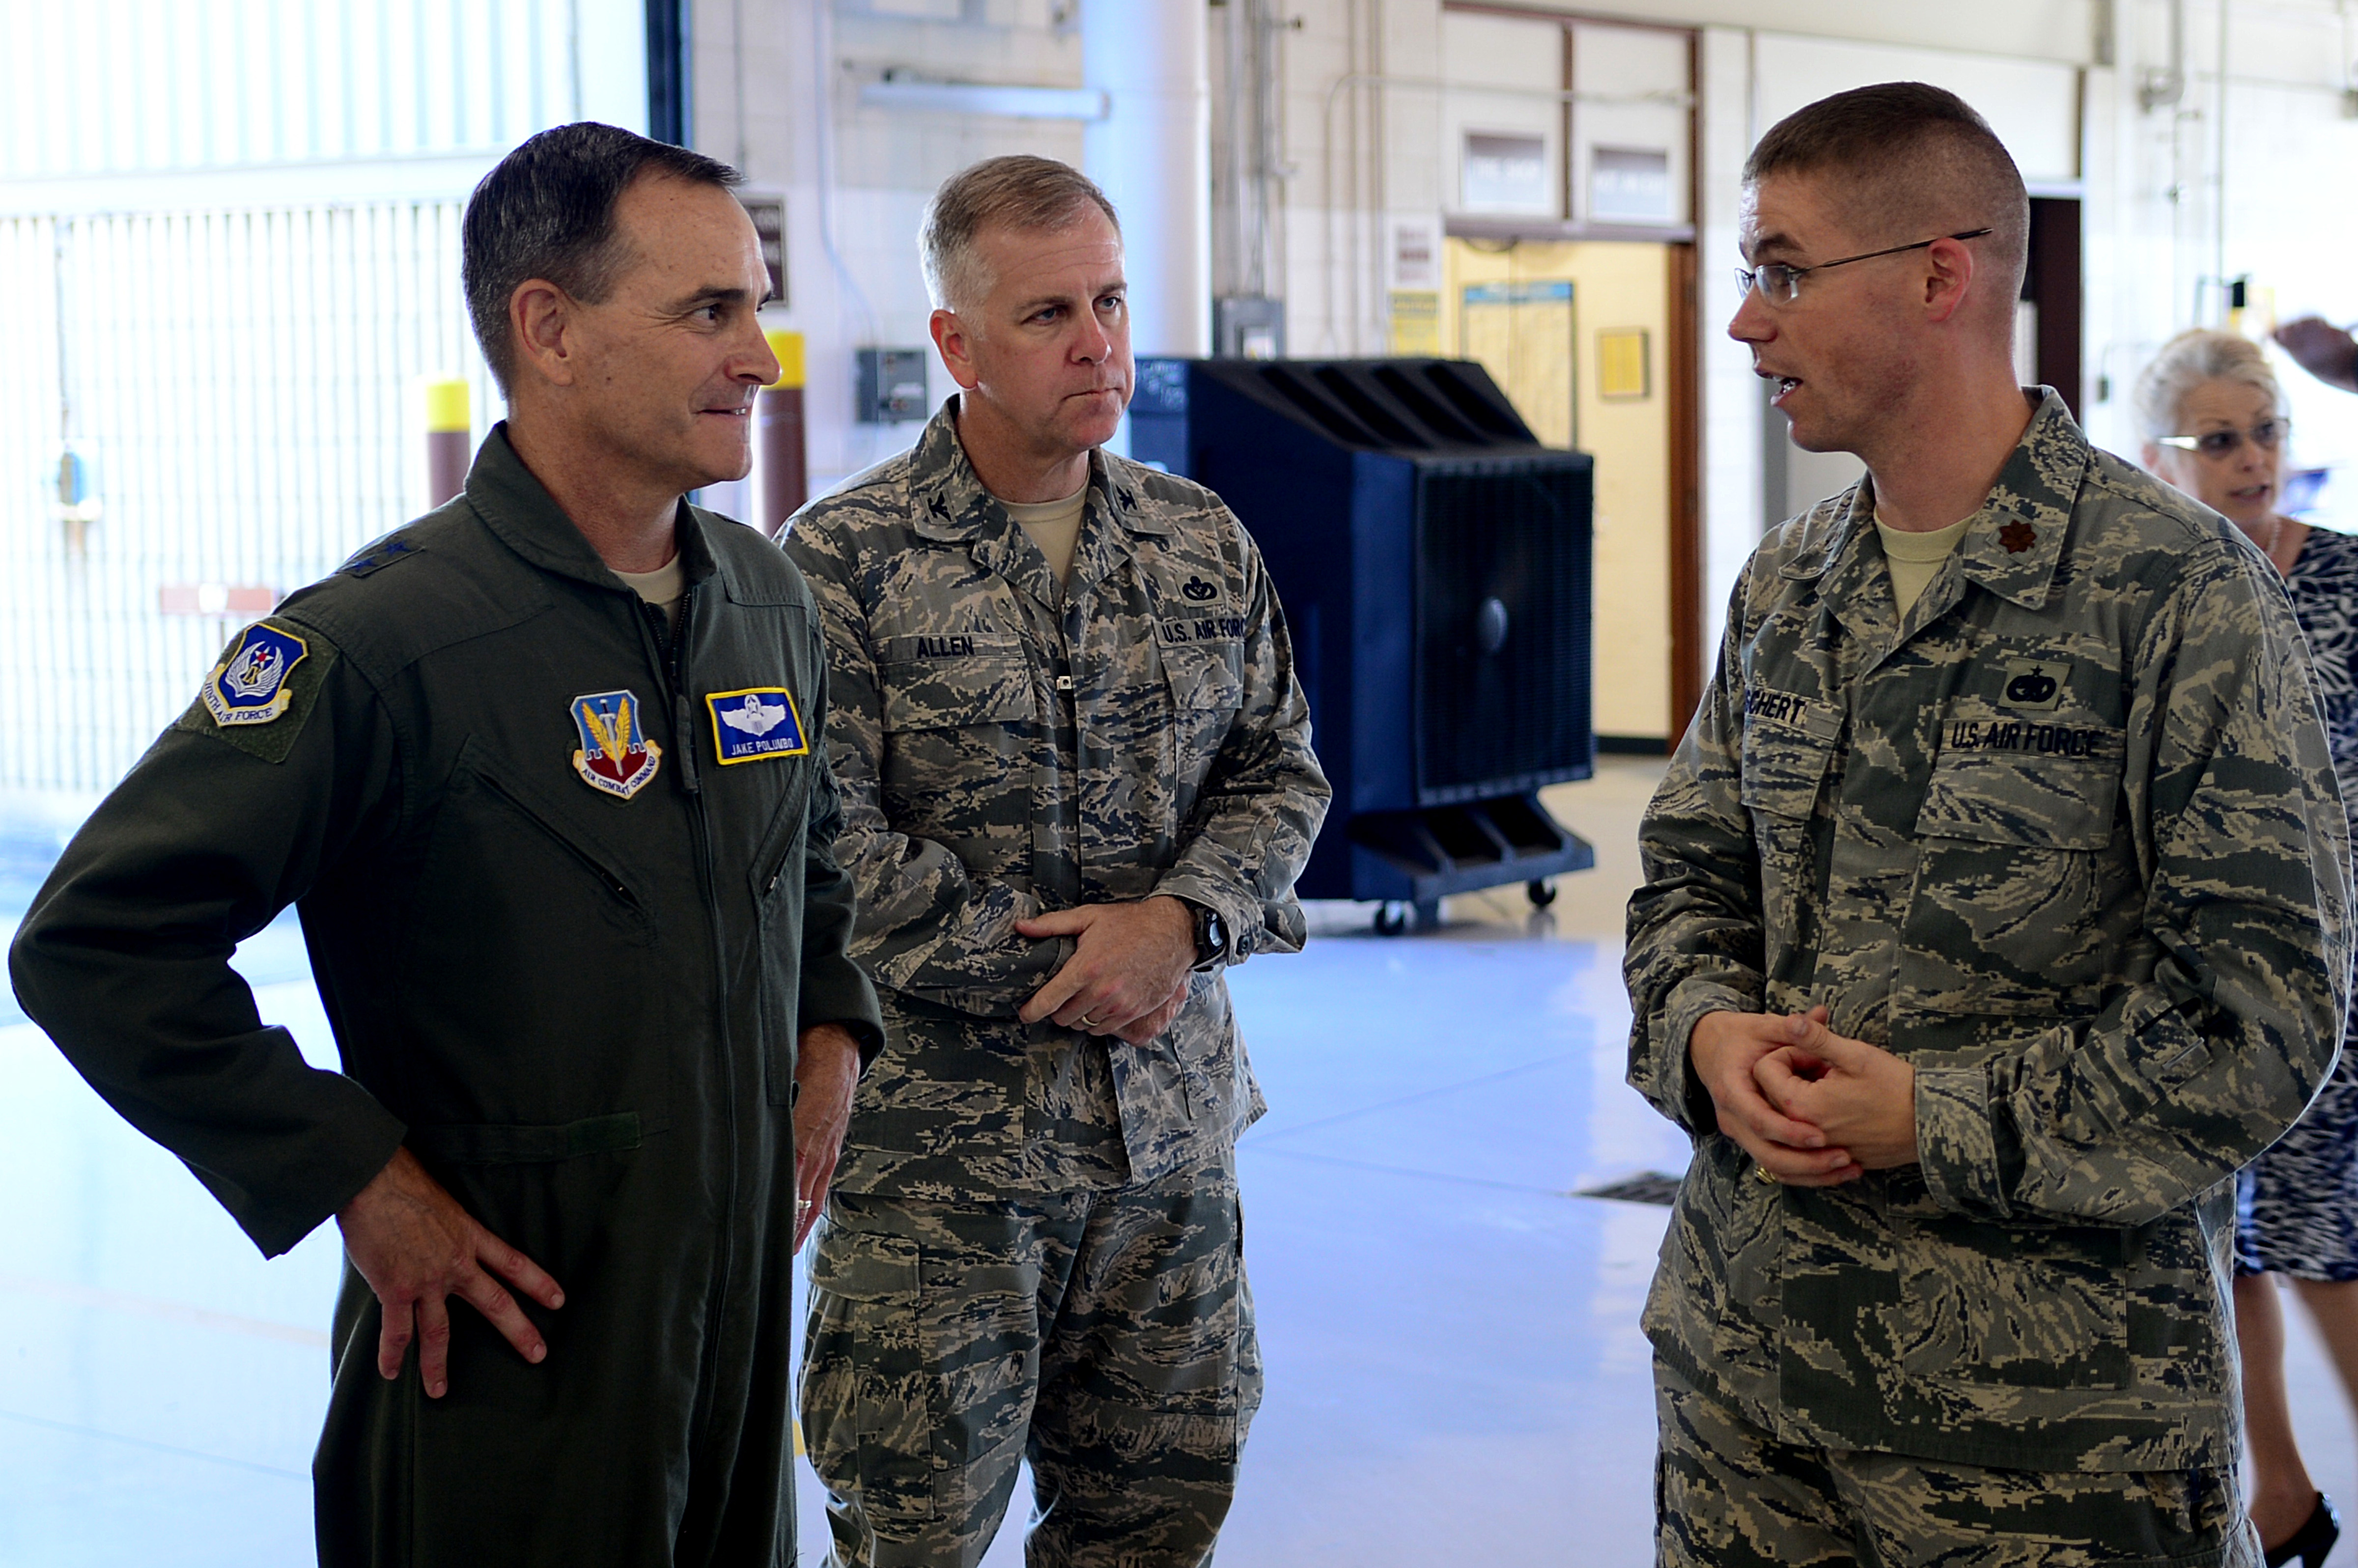 833rd aero squadron - 9th Air Force Commander Visits Jble